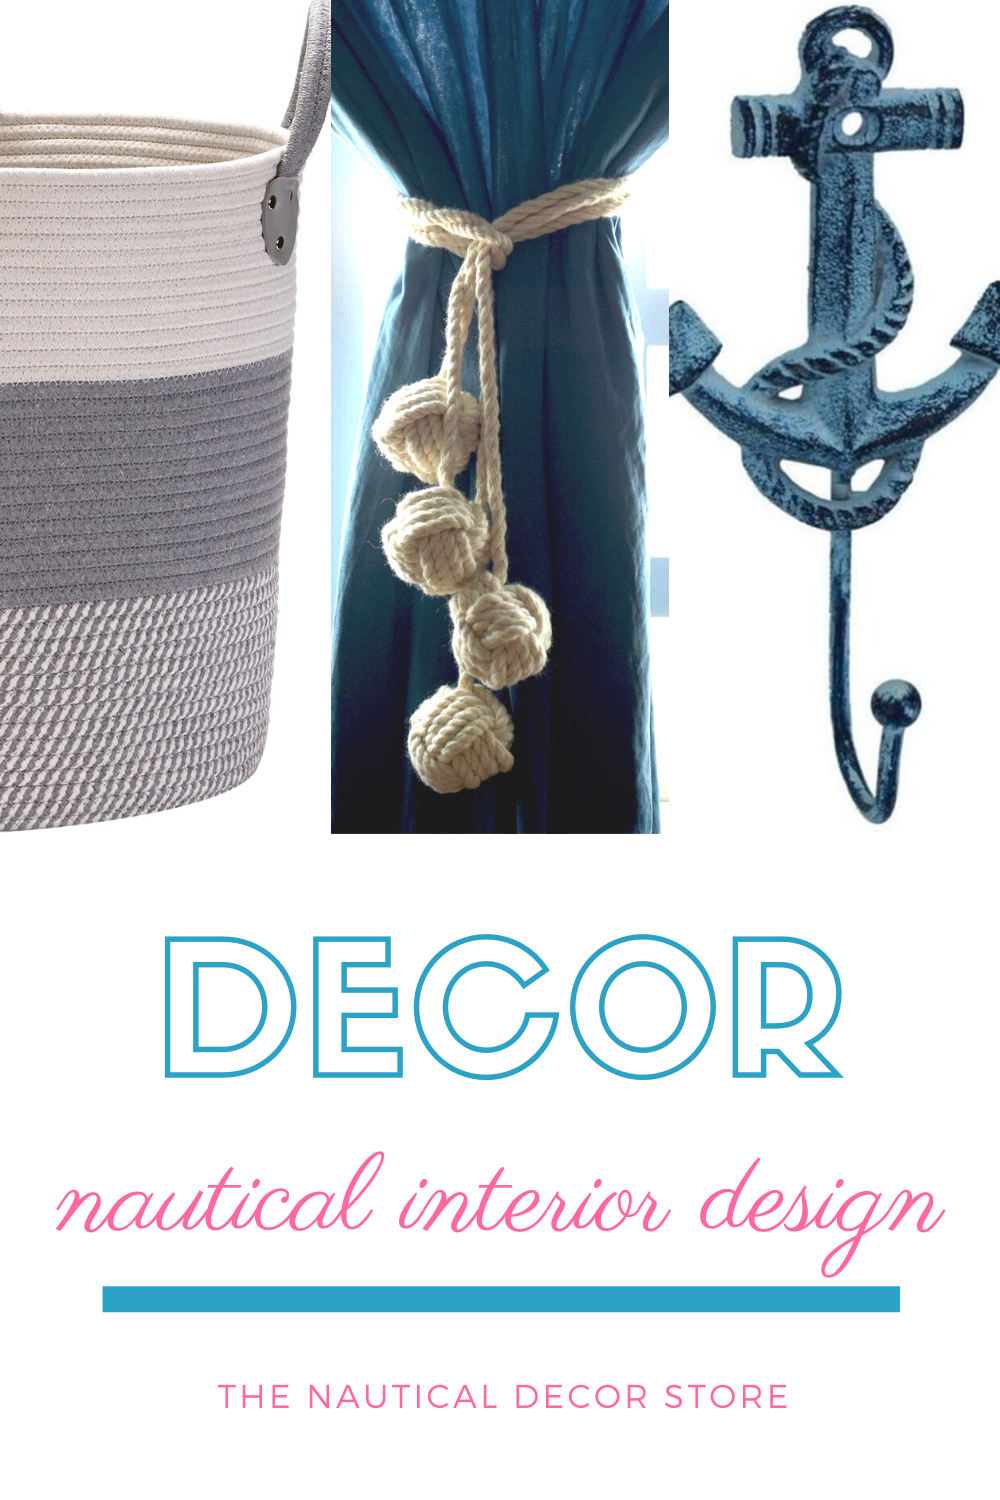 Discover stylish decor that will suit any nautical, beach or coastal interior design style. If you're looking to create your dream home, whether that's a beach house or farmhouse, you can't go wrong with these top picks. This collection of decor is perfect for all over the home and will help you get the nautical aesthetic you really want. #interiordesign #homedecor #nauticaldecor #beachhouse